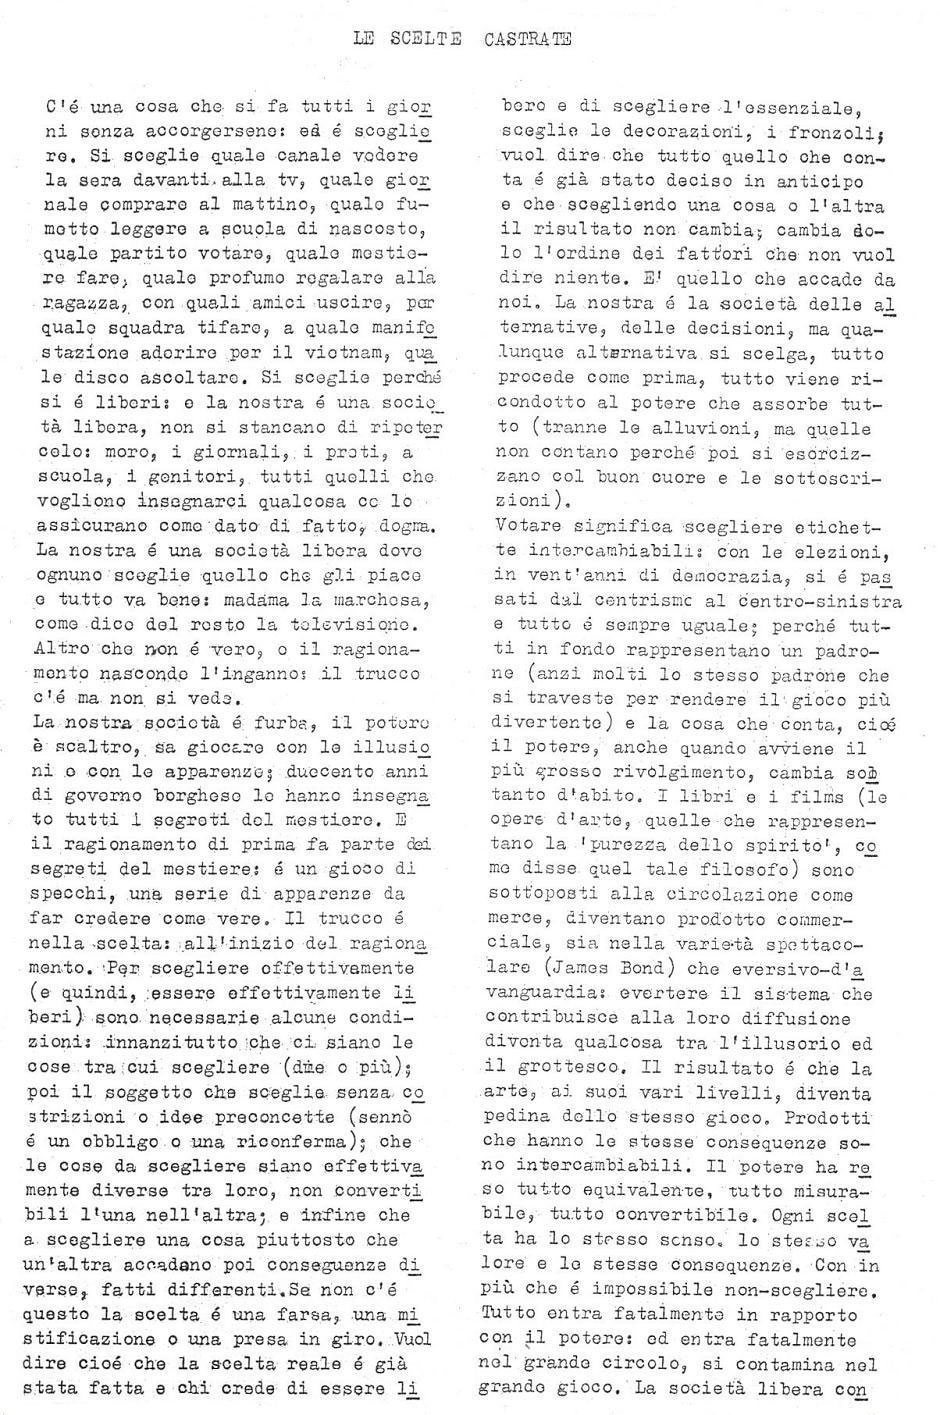 The second issue of Mondo Beat magazine - Edition 5,200 copies - Milan, December 30, 1966